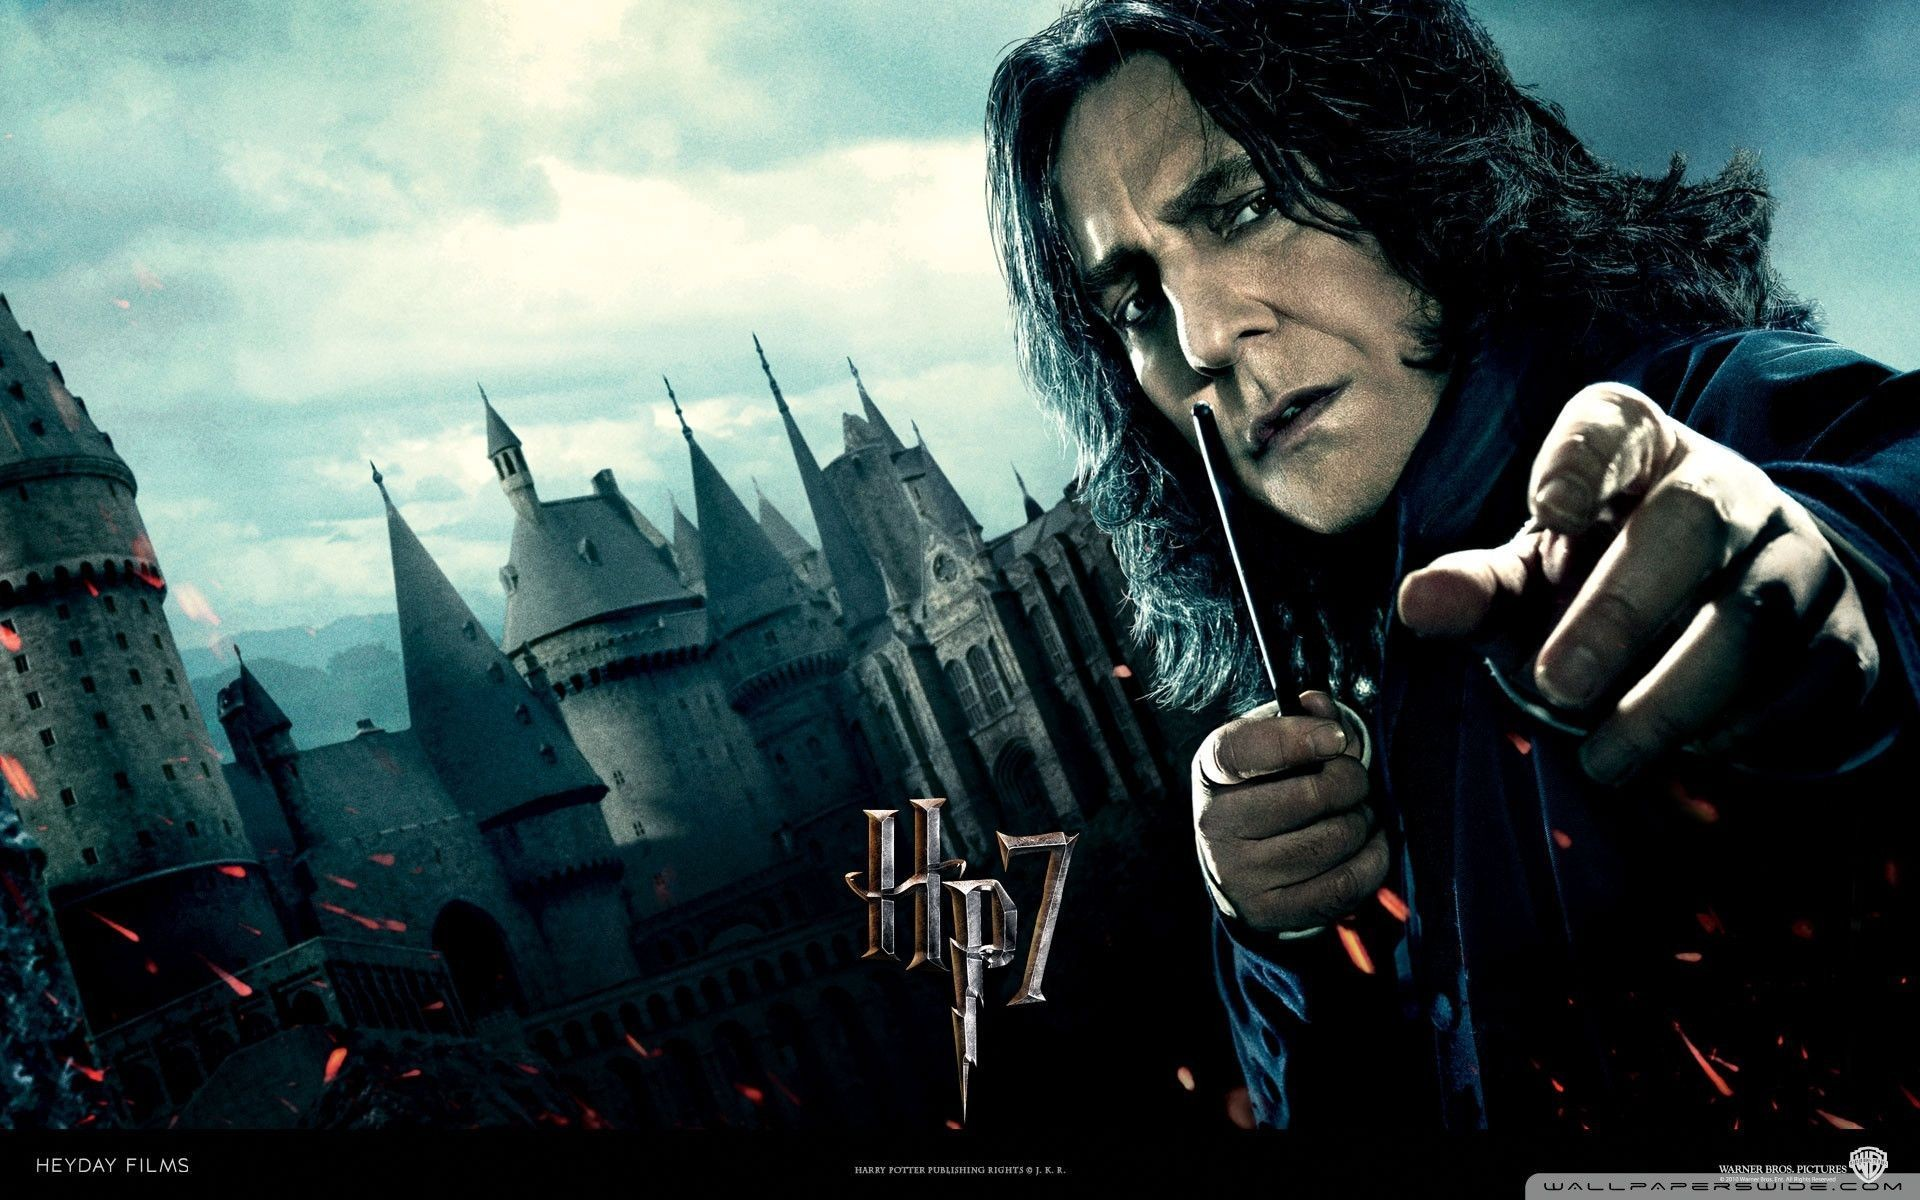 47 harry potter wallpapers download free stunning - Harry potter images download ...